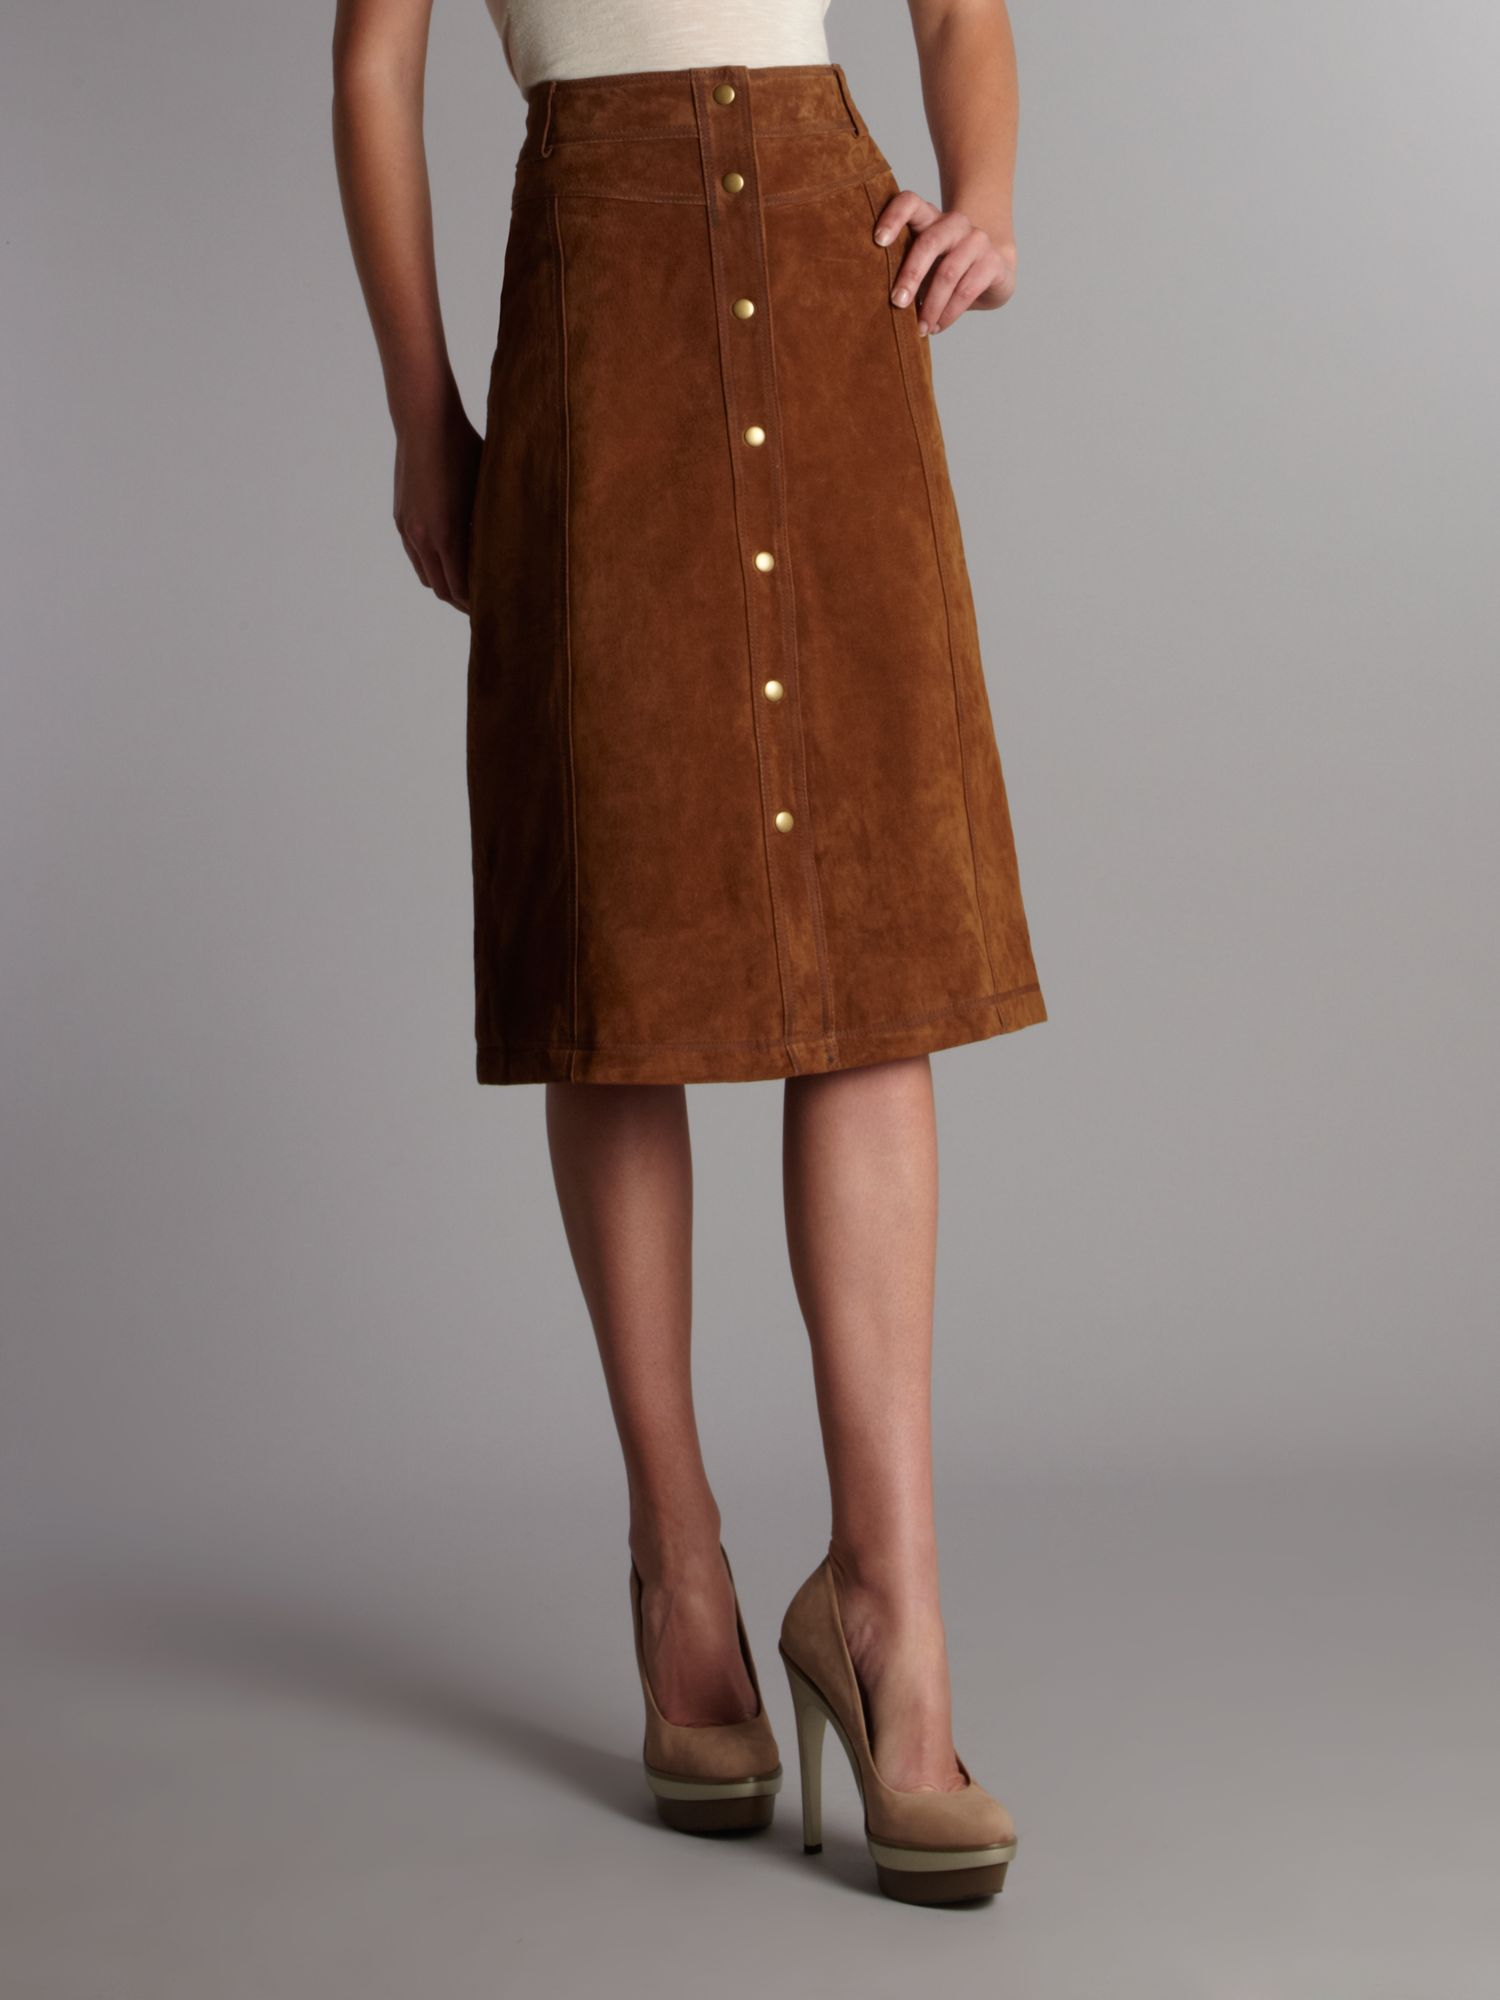 Linea weekend Suede Midi Skirt in Brown